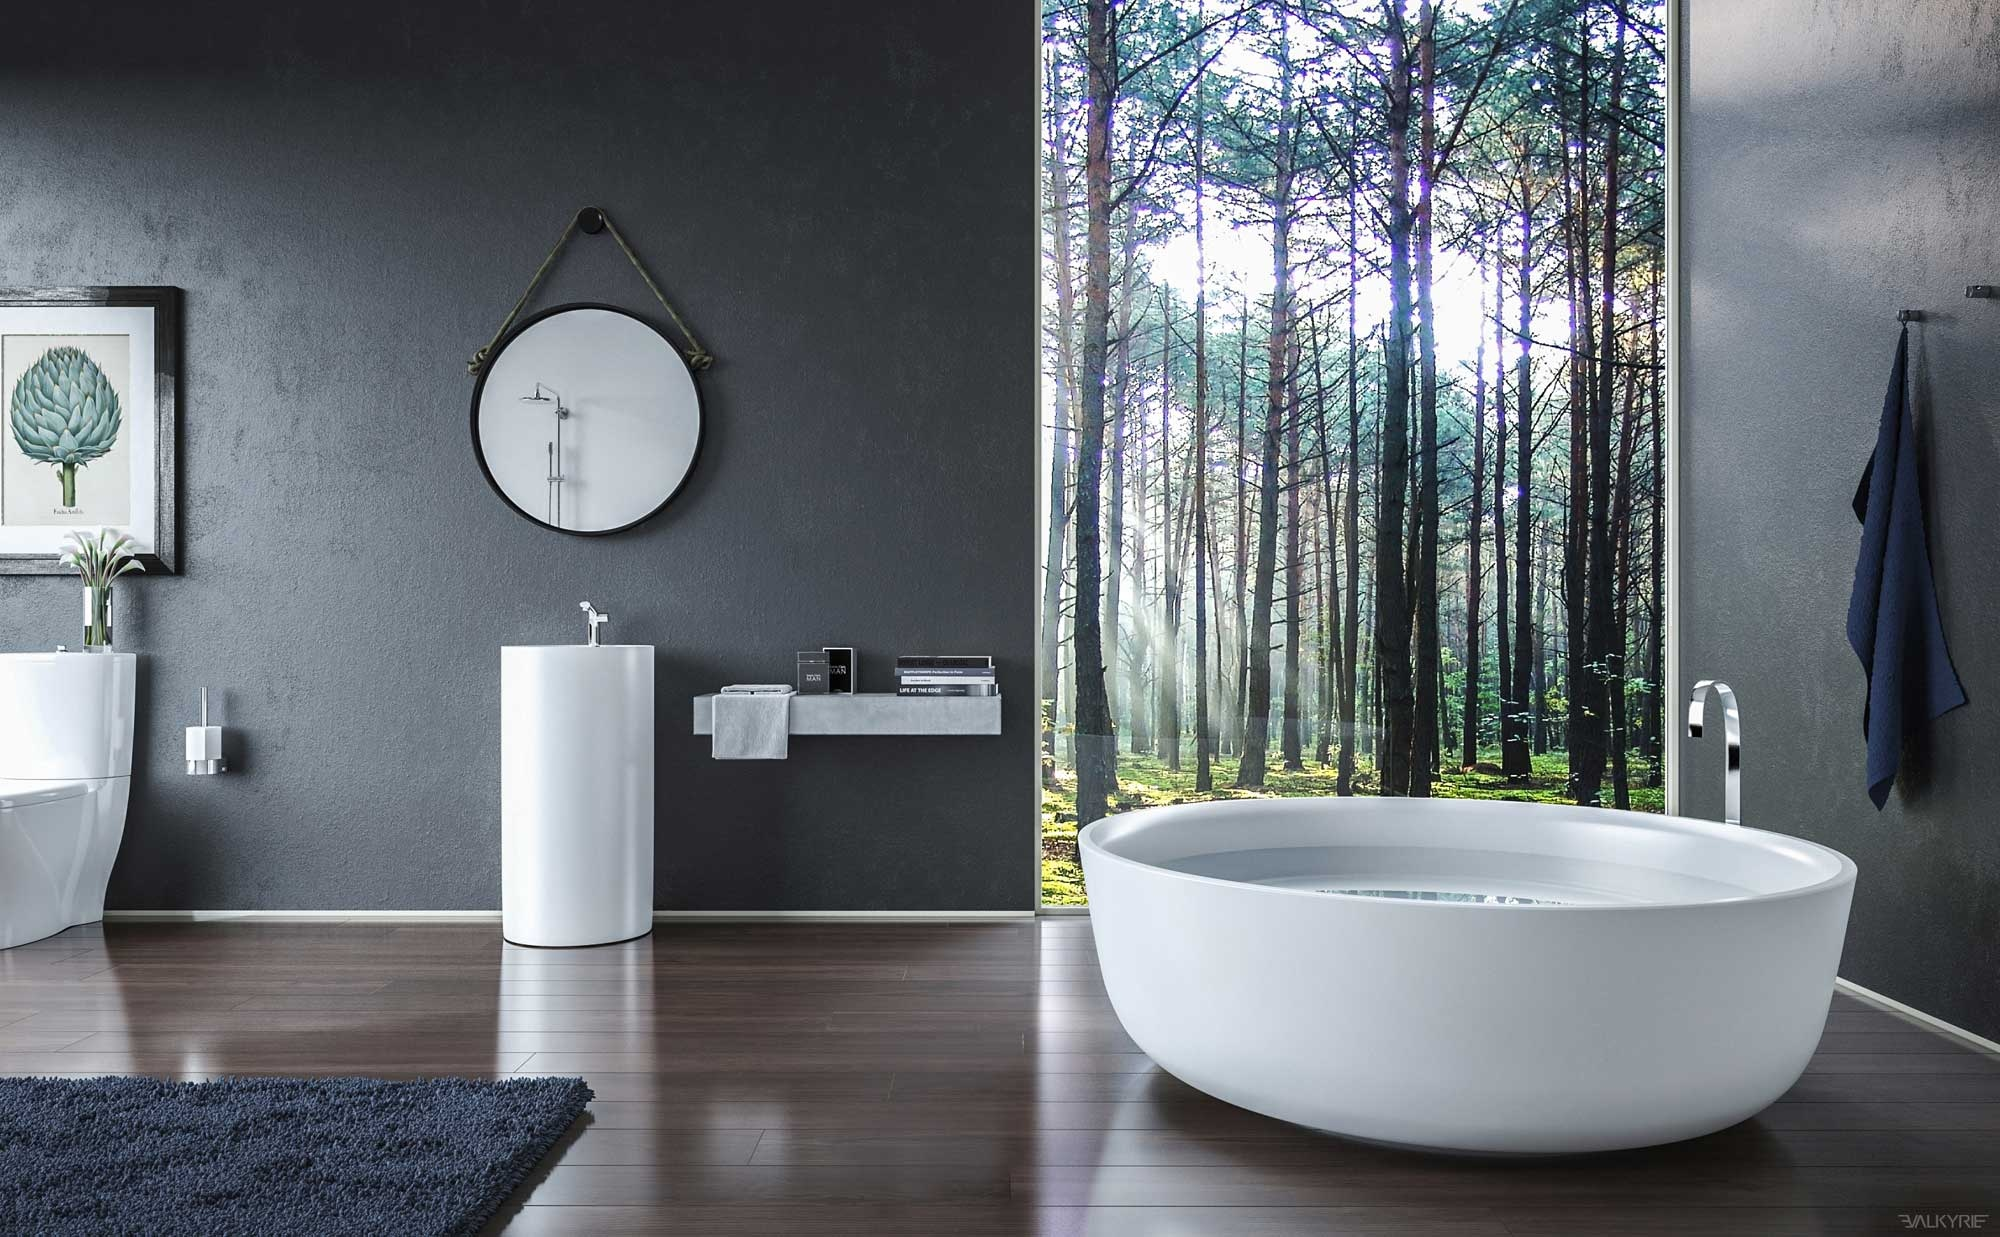 Ultra luxury bathroom inspiration - Salle de bain zen photo ...